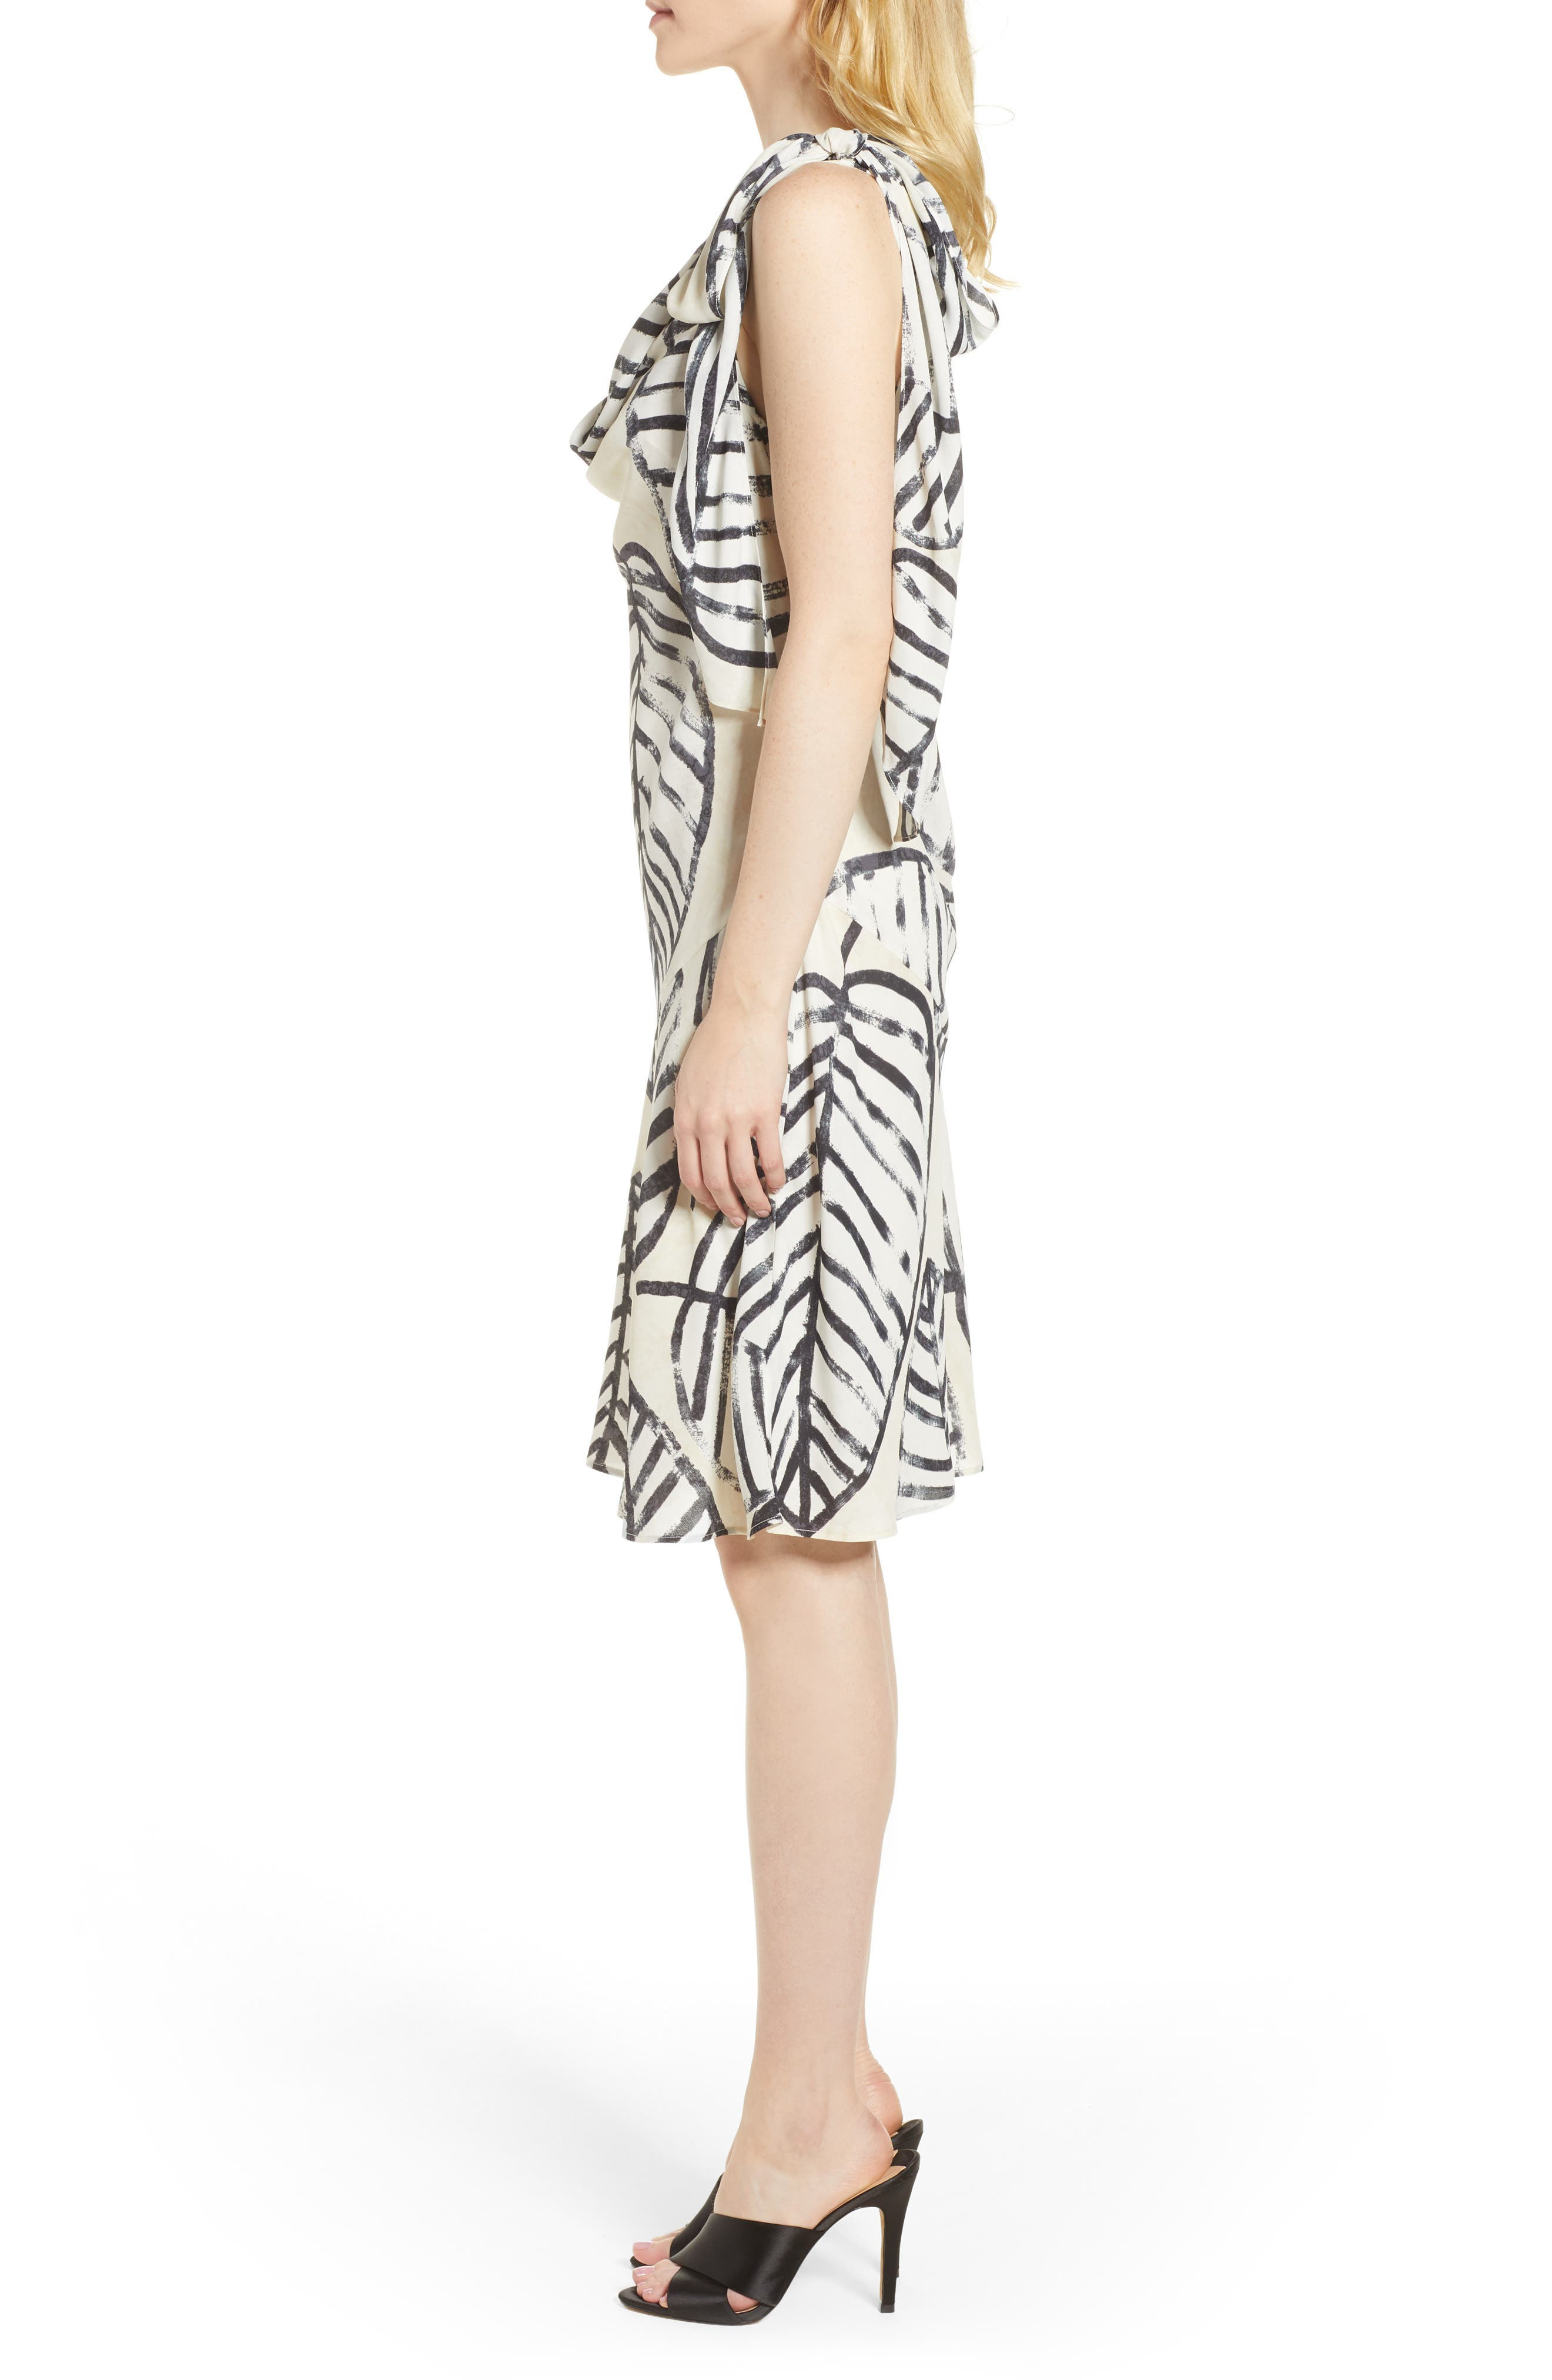 Etched Leaves Tie Dress,                             Alternate thumbnail 3, color,                             250